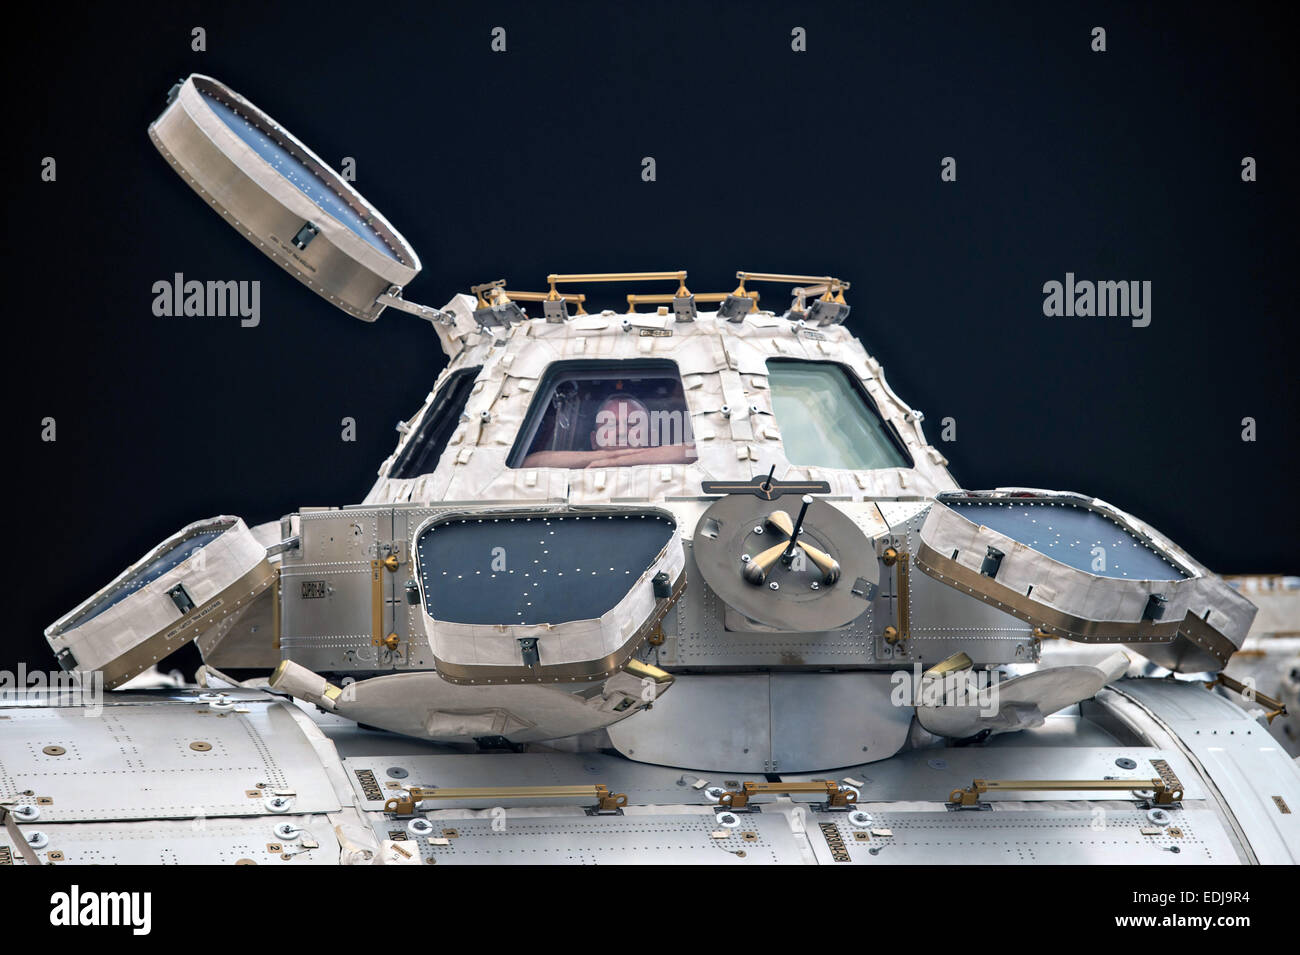 US Astronaut Barry Wilmore, Commander of Expedition 42 aboard the International Space Station looks out of the Cupola - Stock Image